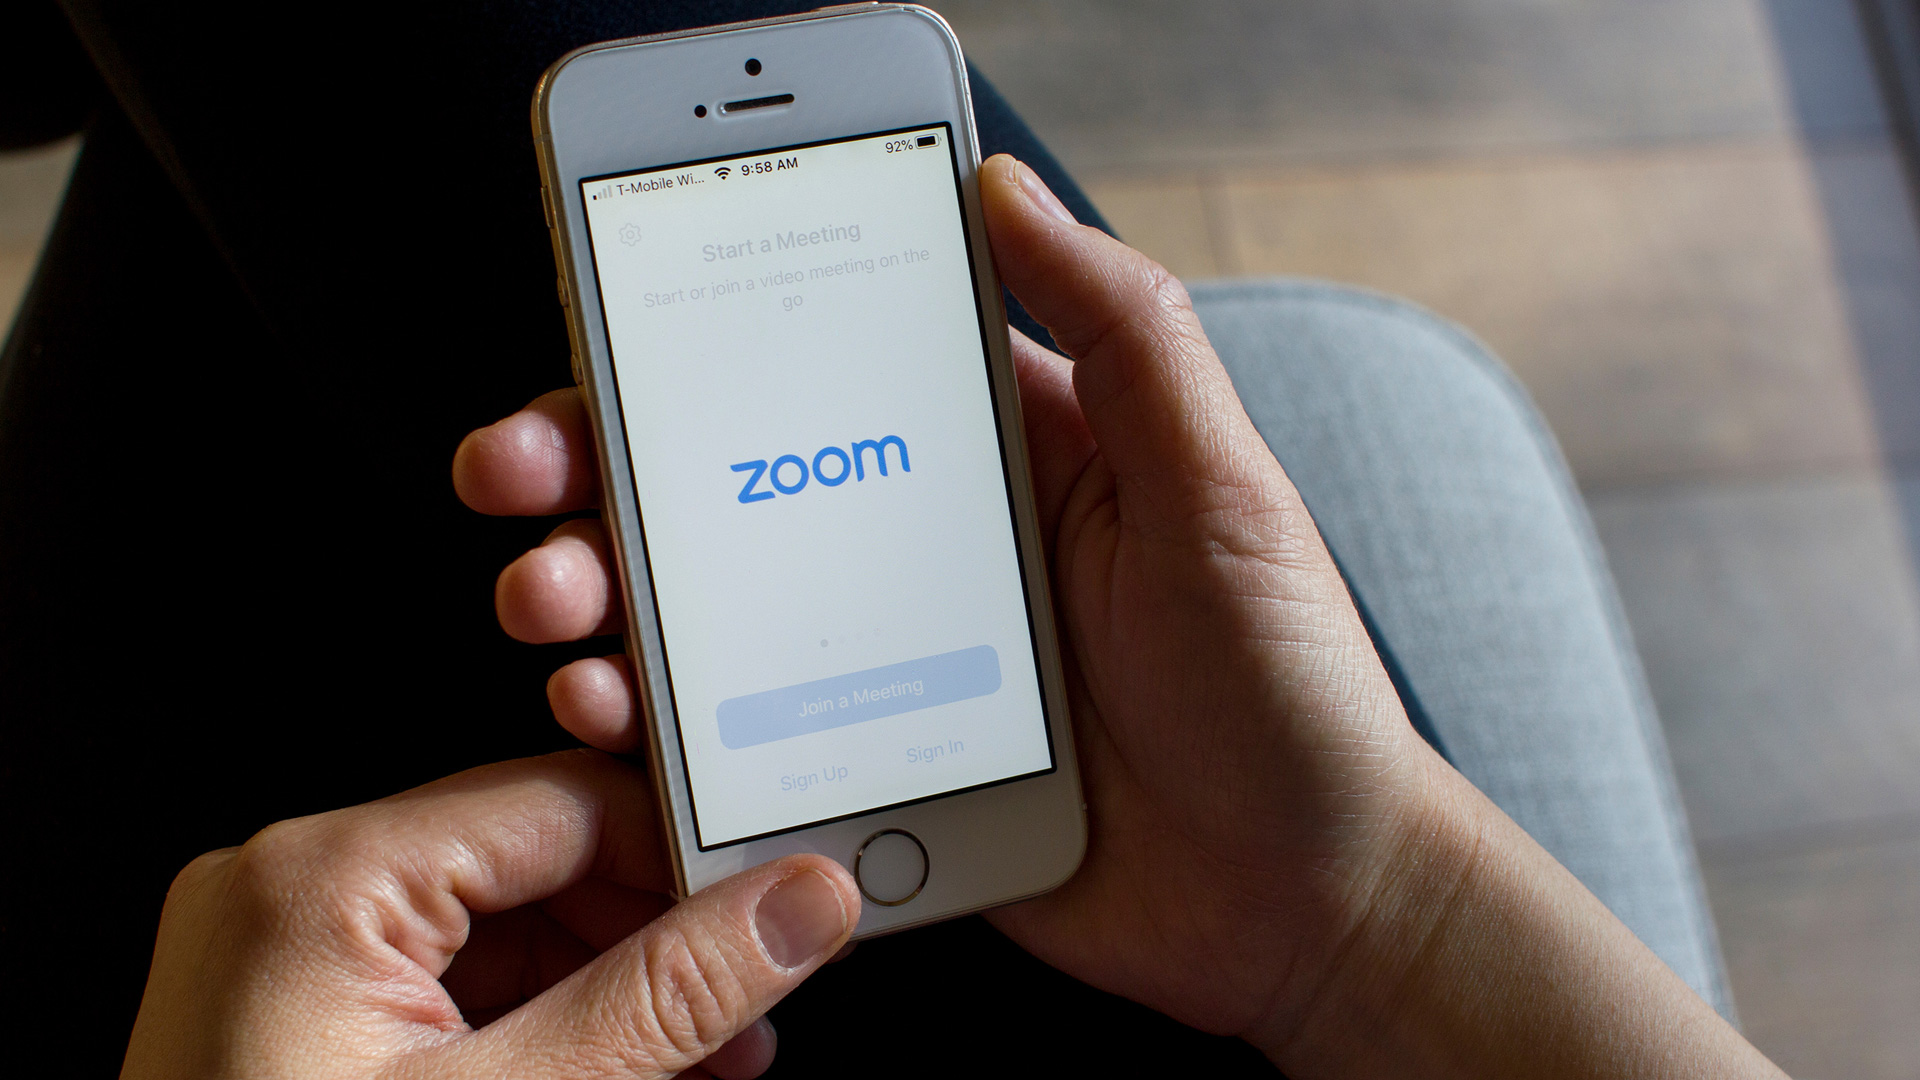 Schools in New York City are moving away from using the video conference app Zoom after a review of security concerns. (Shutterstock)